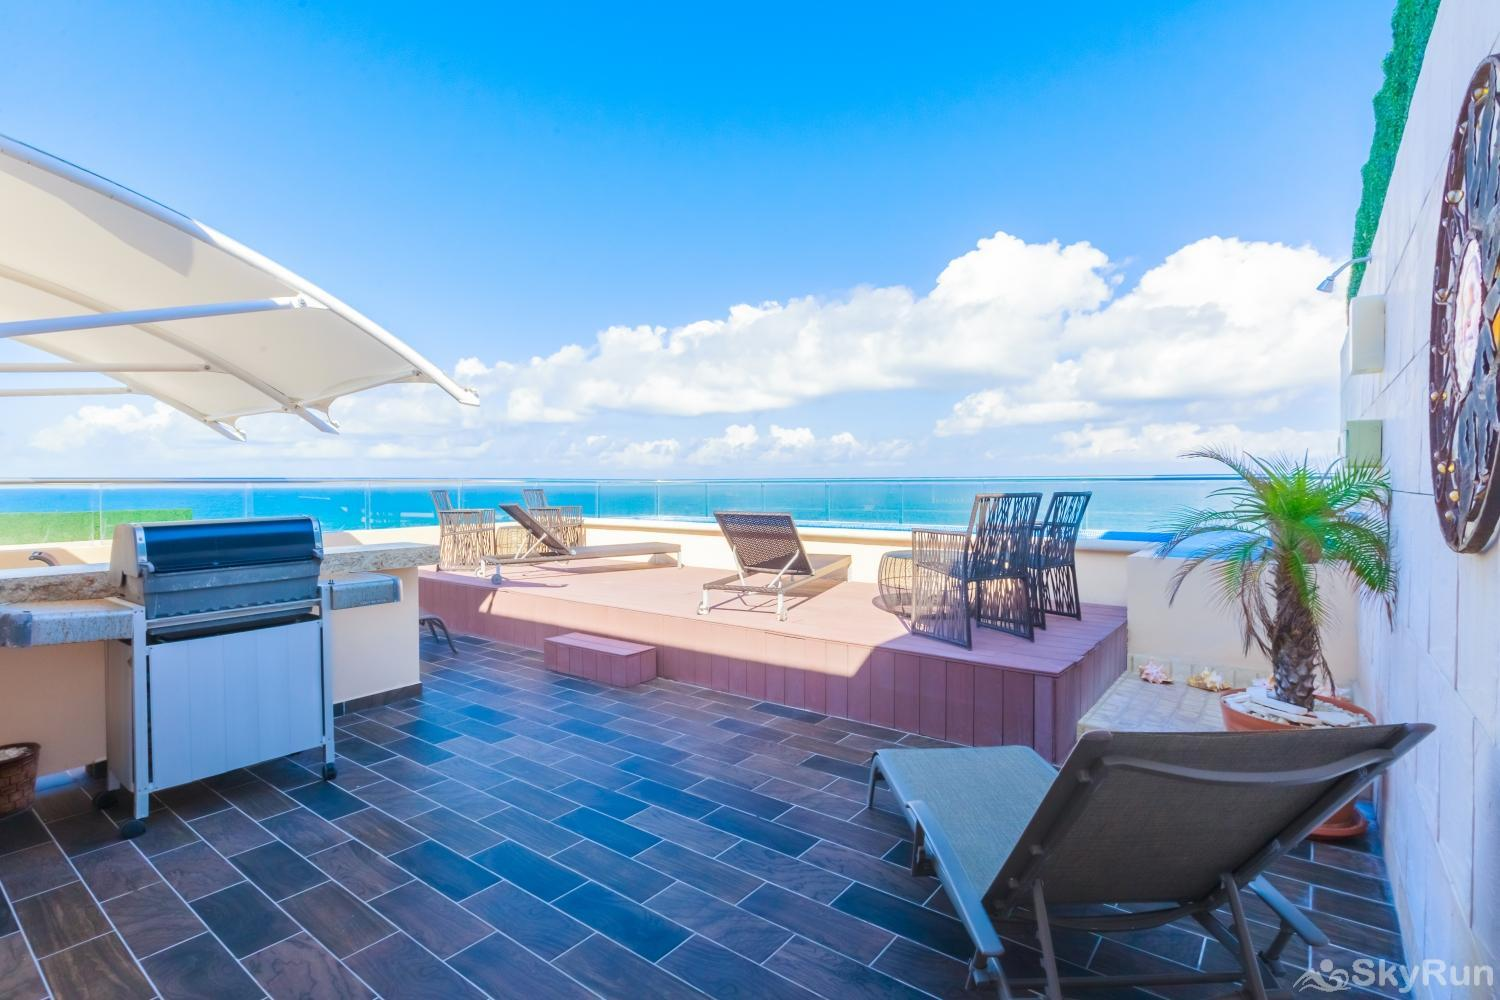 Oceanfront Penthouse | Isla Mujeres | Private Pool | Resort Amenities | Prime location | 3 bedroom | Oceanview Ocean View Luxurious Penthouse Private Pool at Isla Mujeres SkyRun